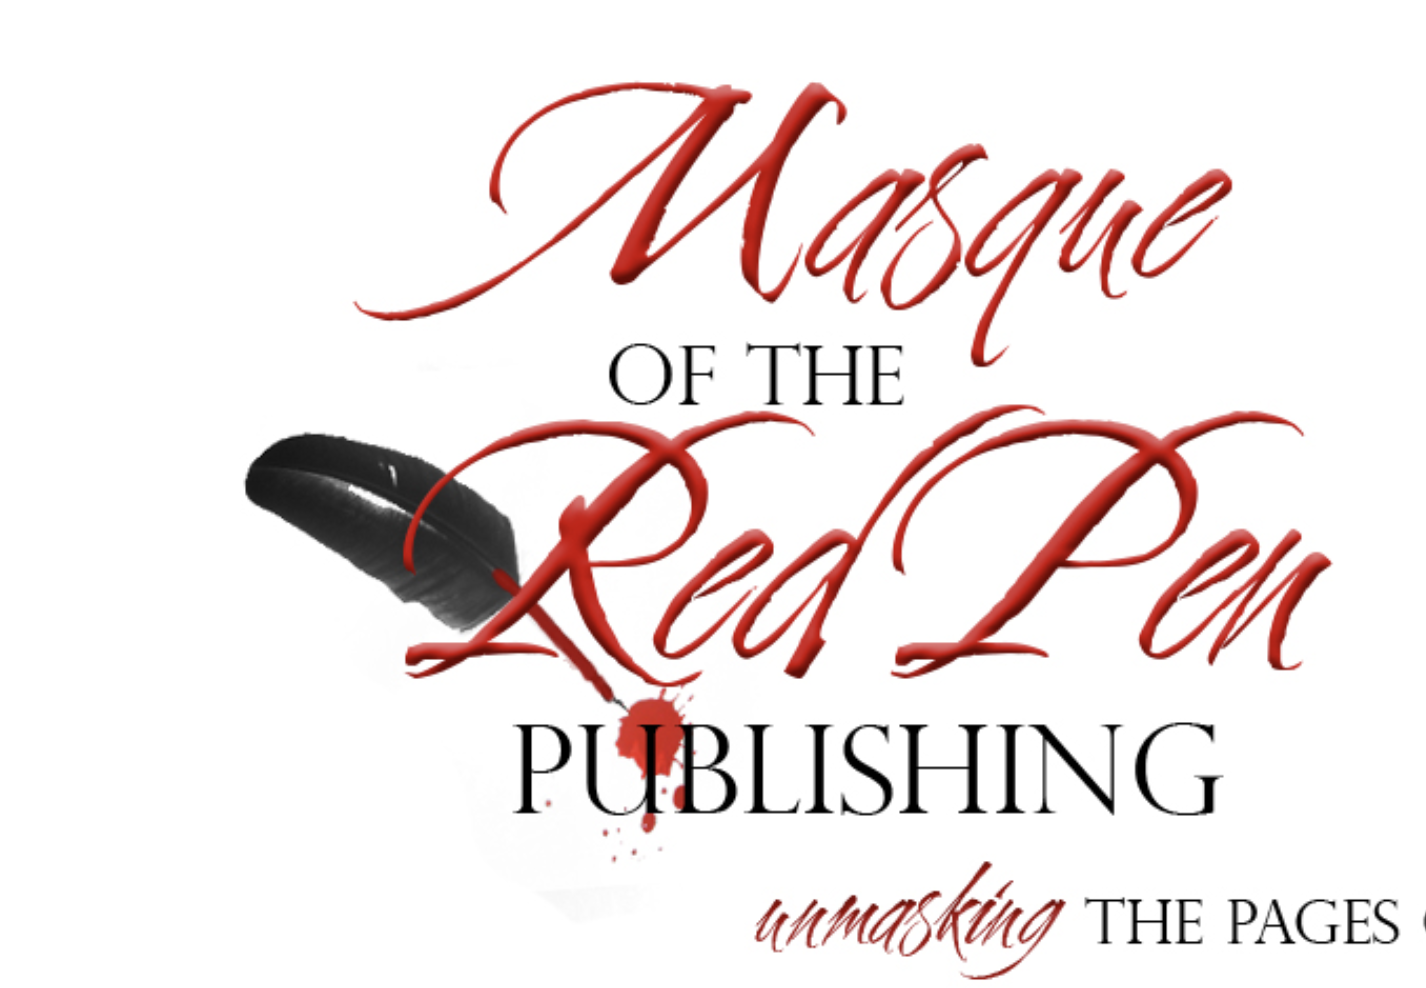 Masque of the Red Pen